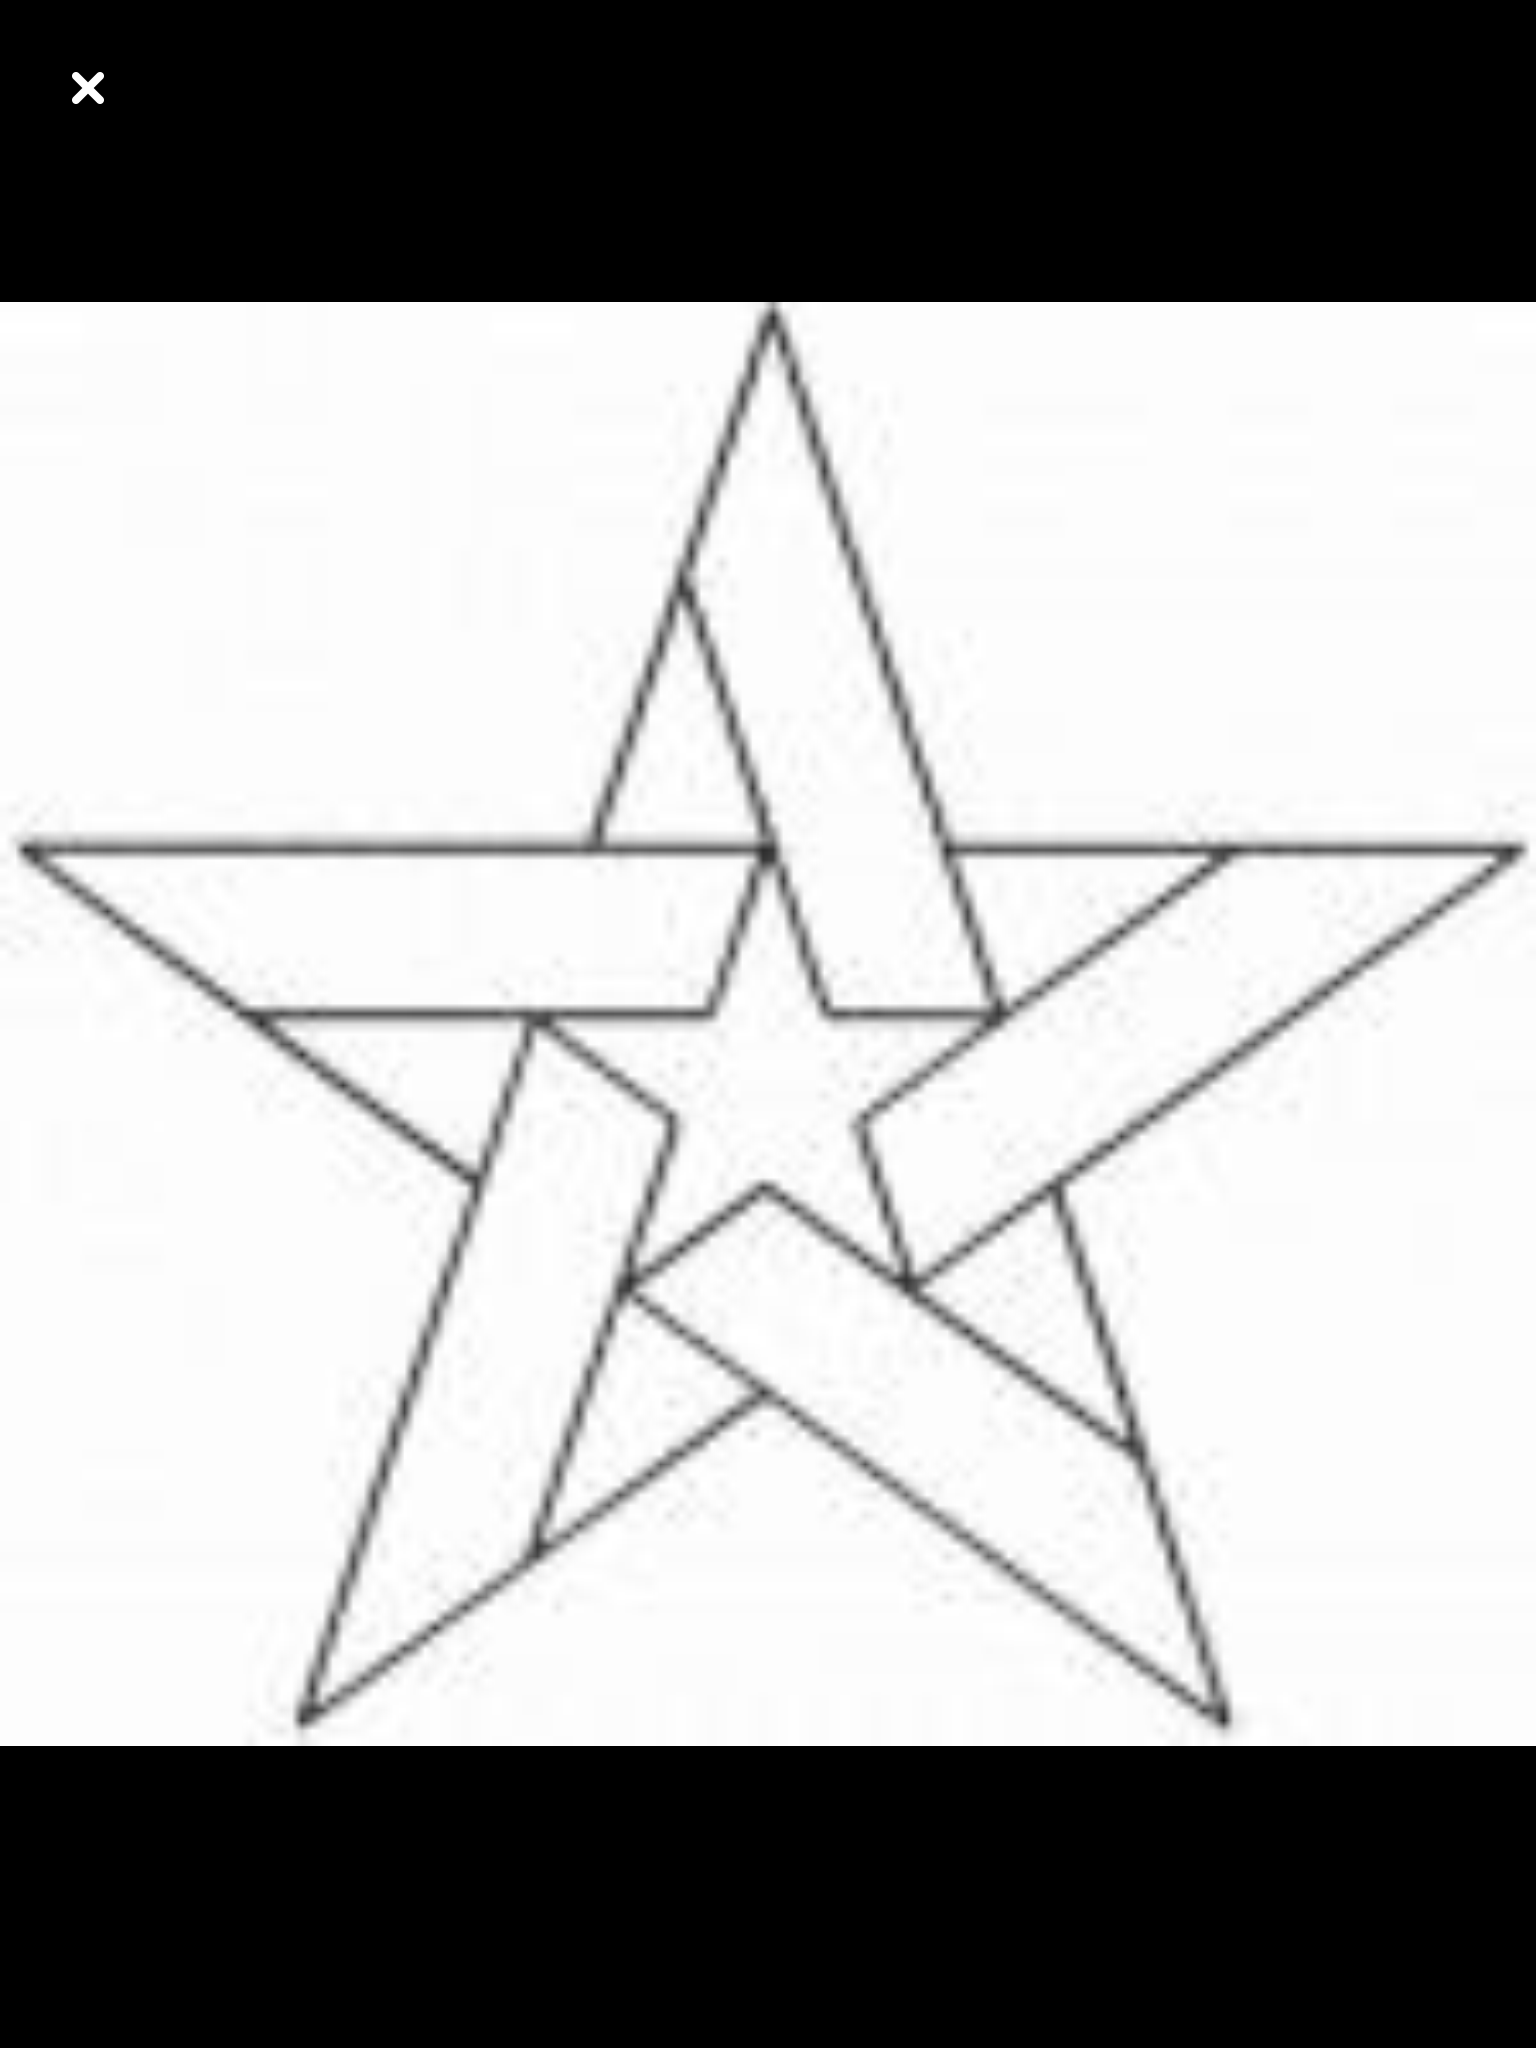 hight resolution of five pointed star block continuous line stencil stencil is made of mylar plastic with the displayed design cut into it